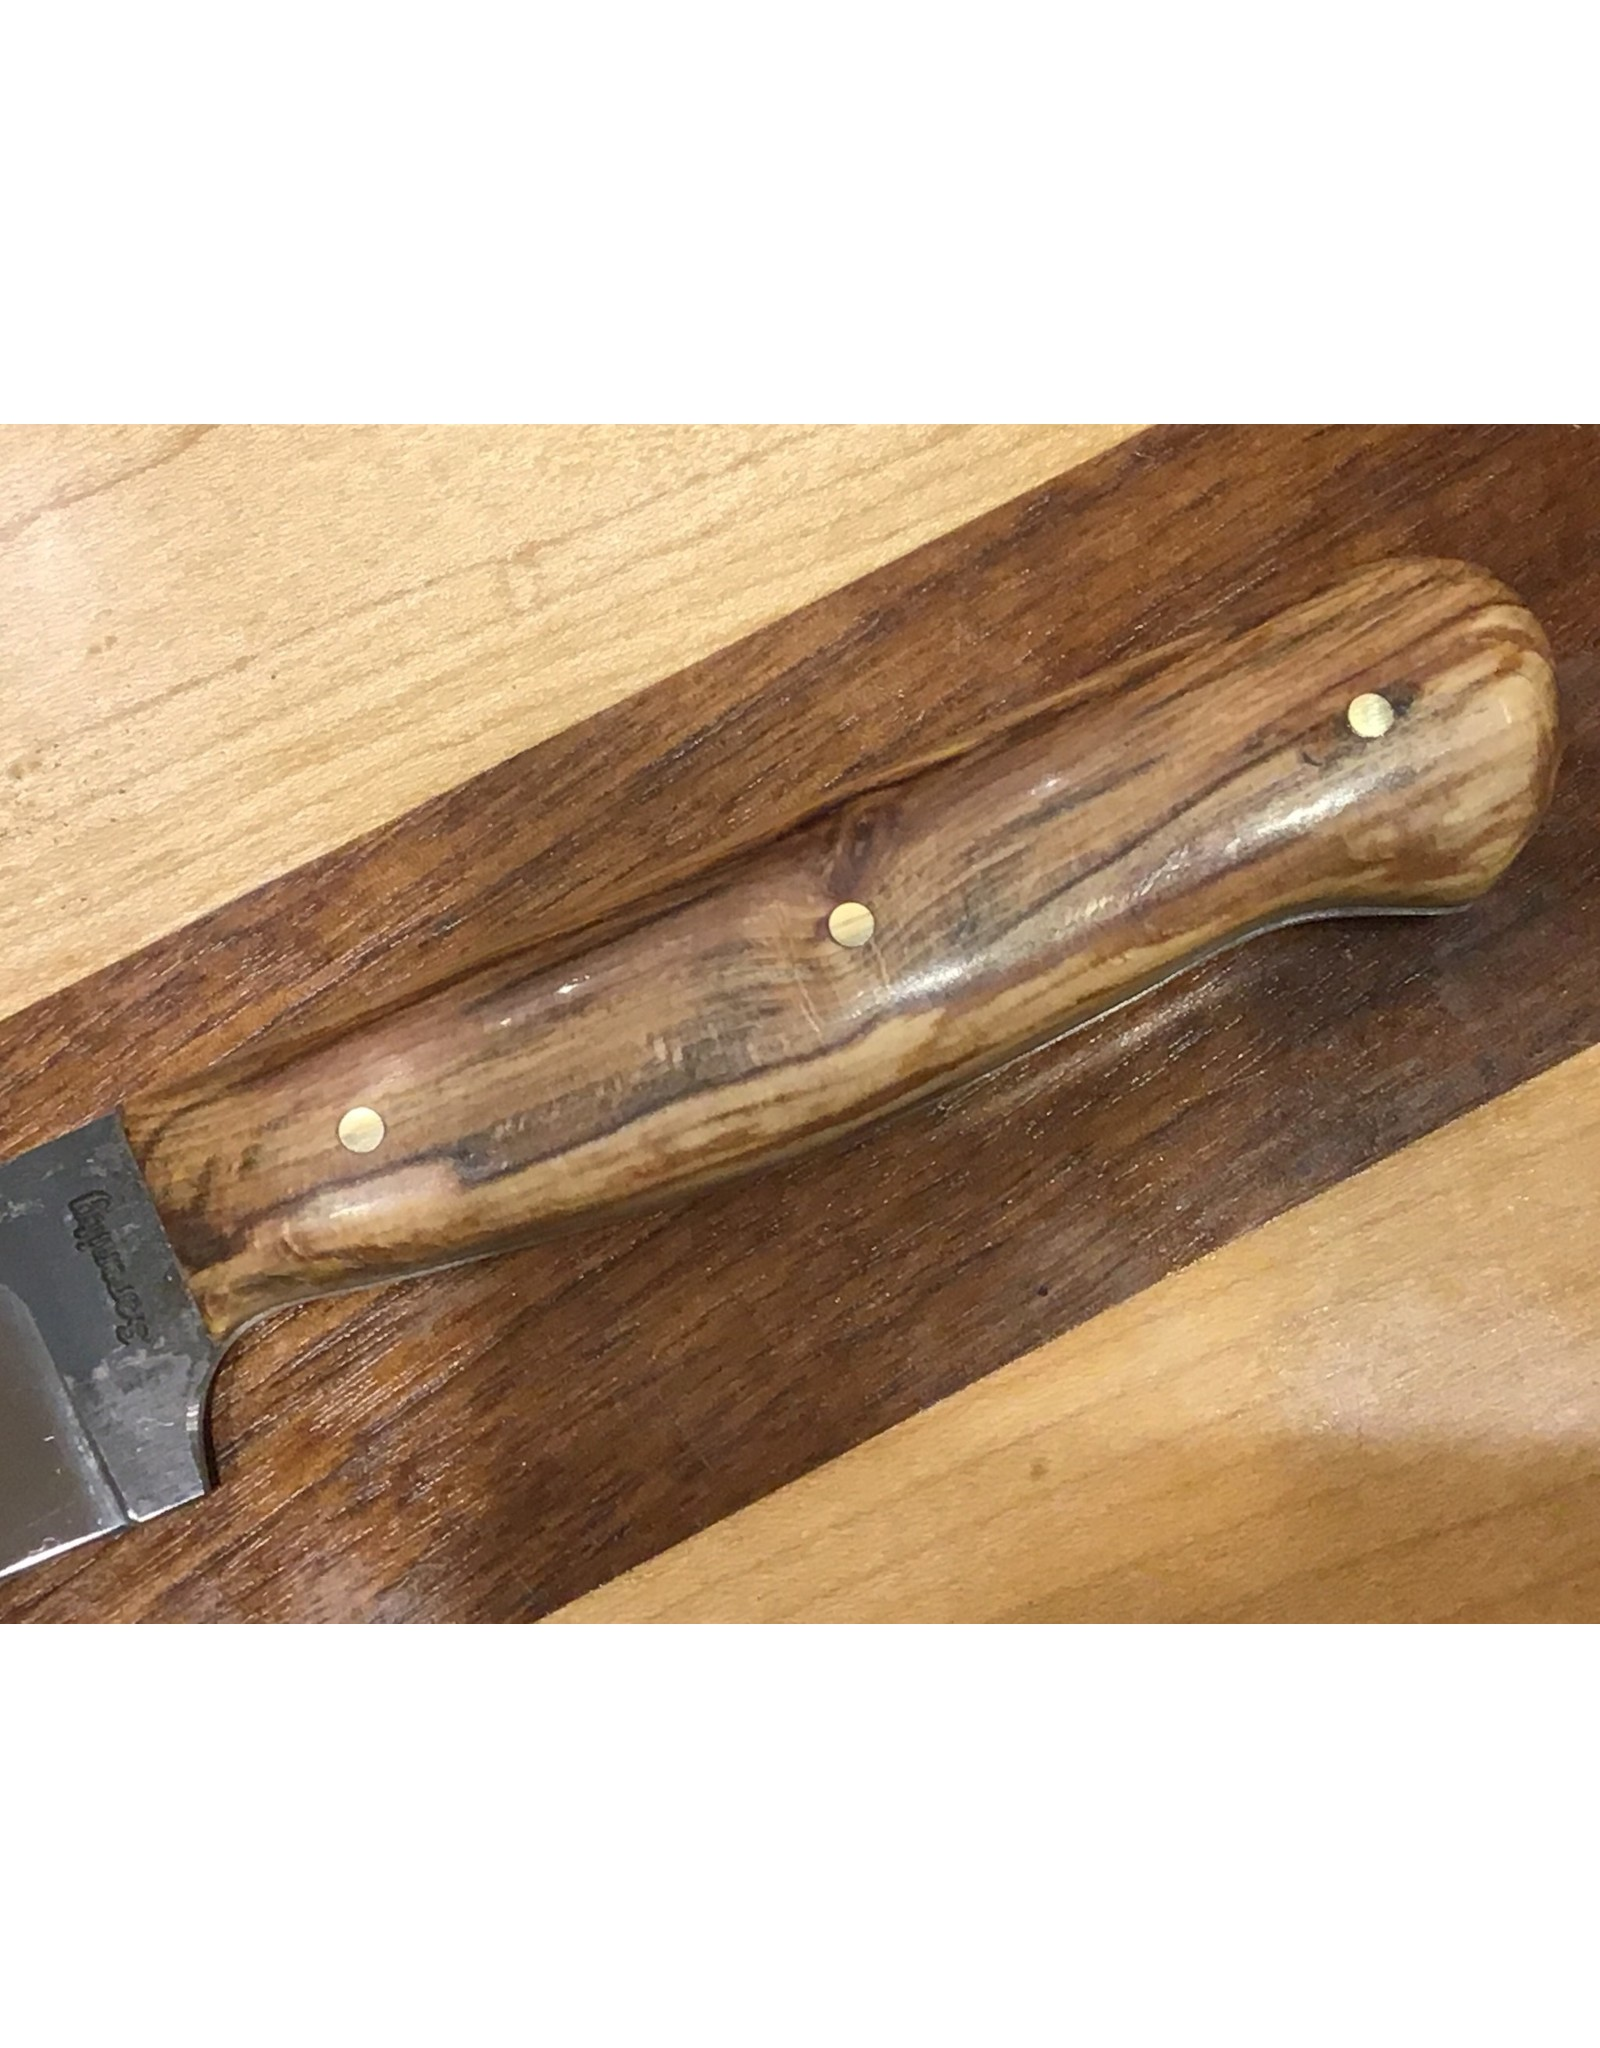 "Serenity 4 1/2"" Paring Knife in High Carbon Steel and Sugar Maple Handle"